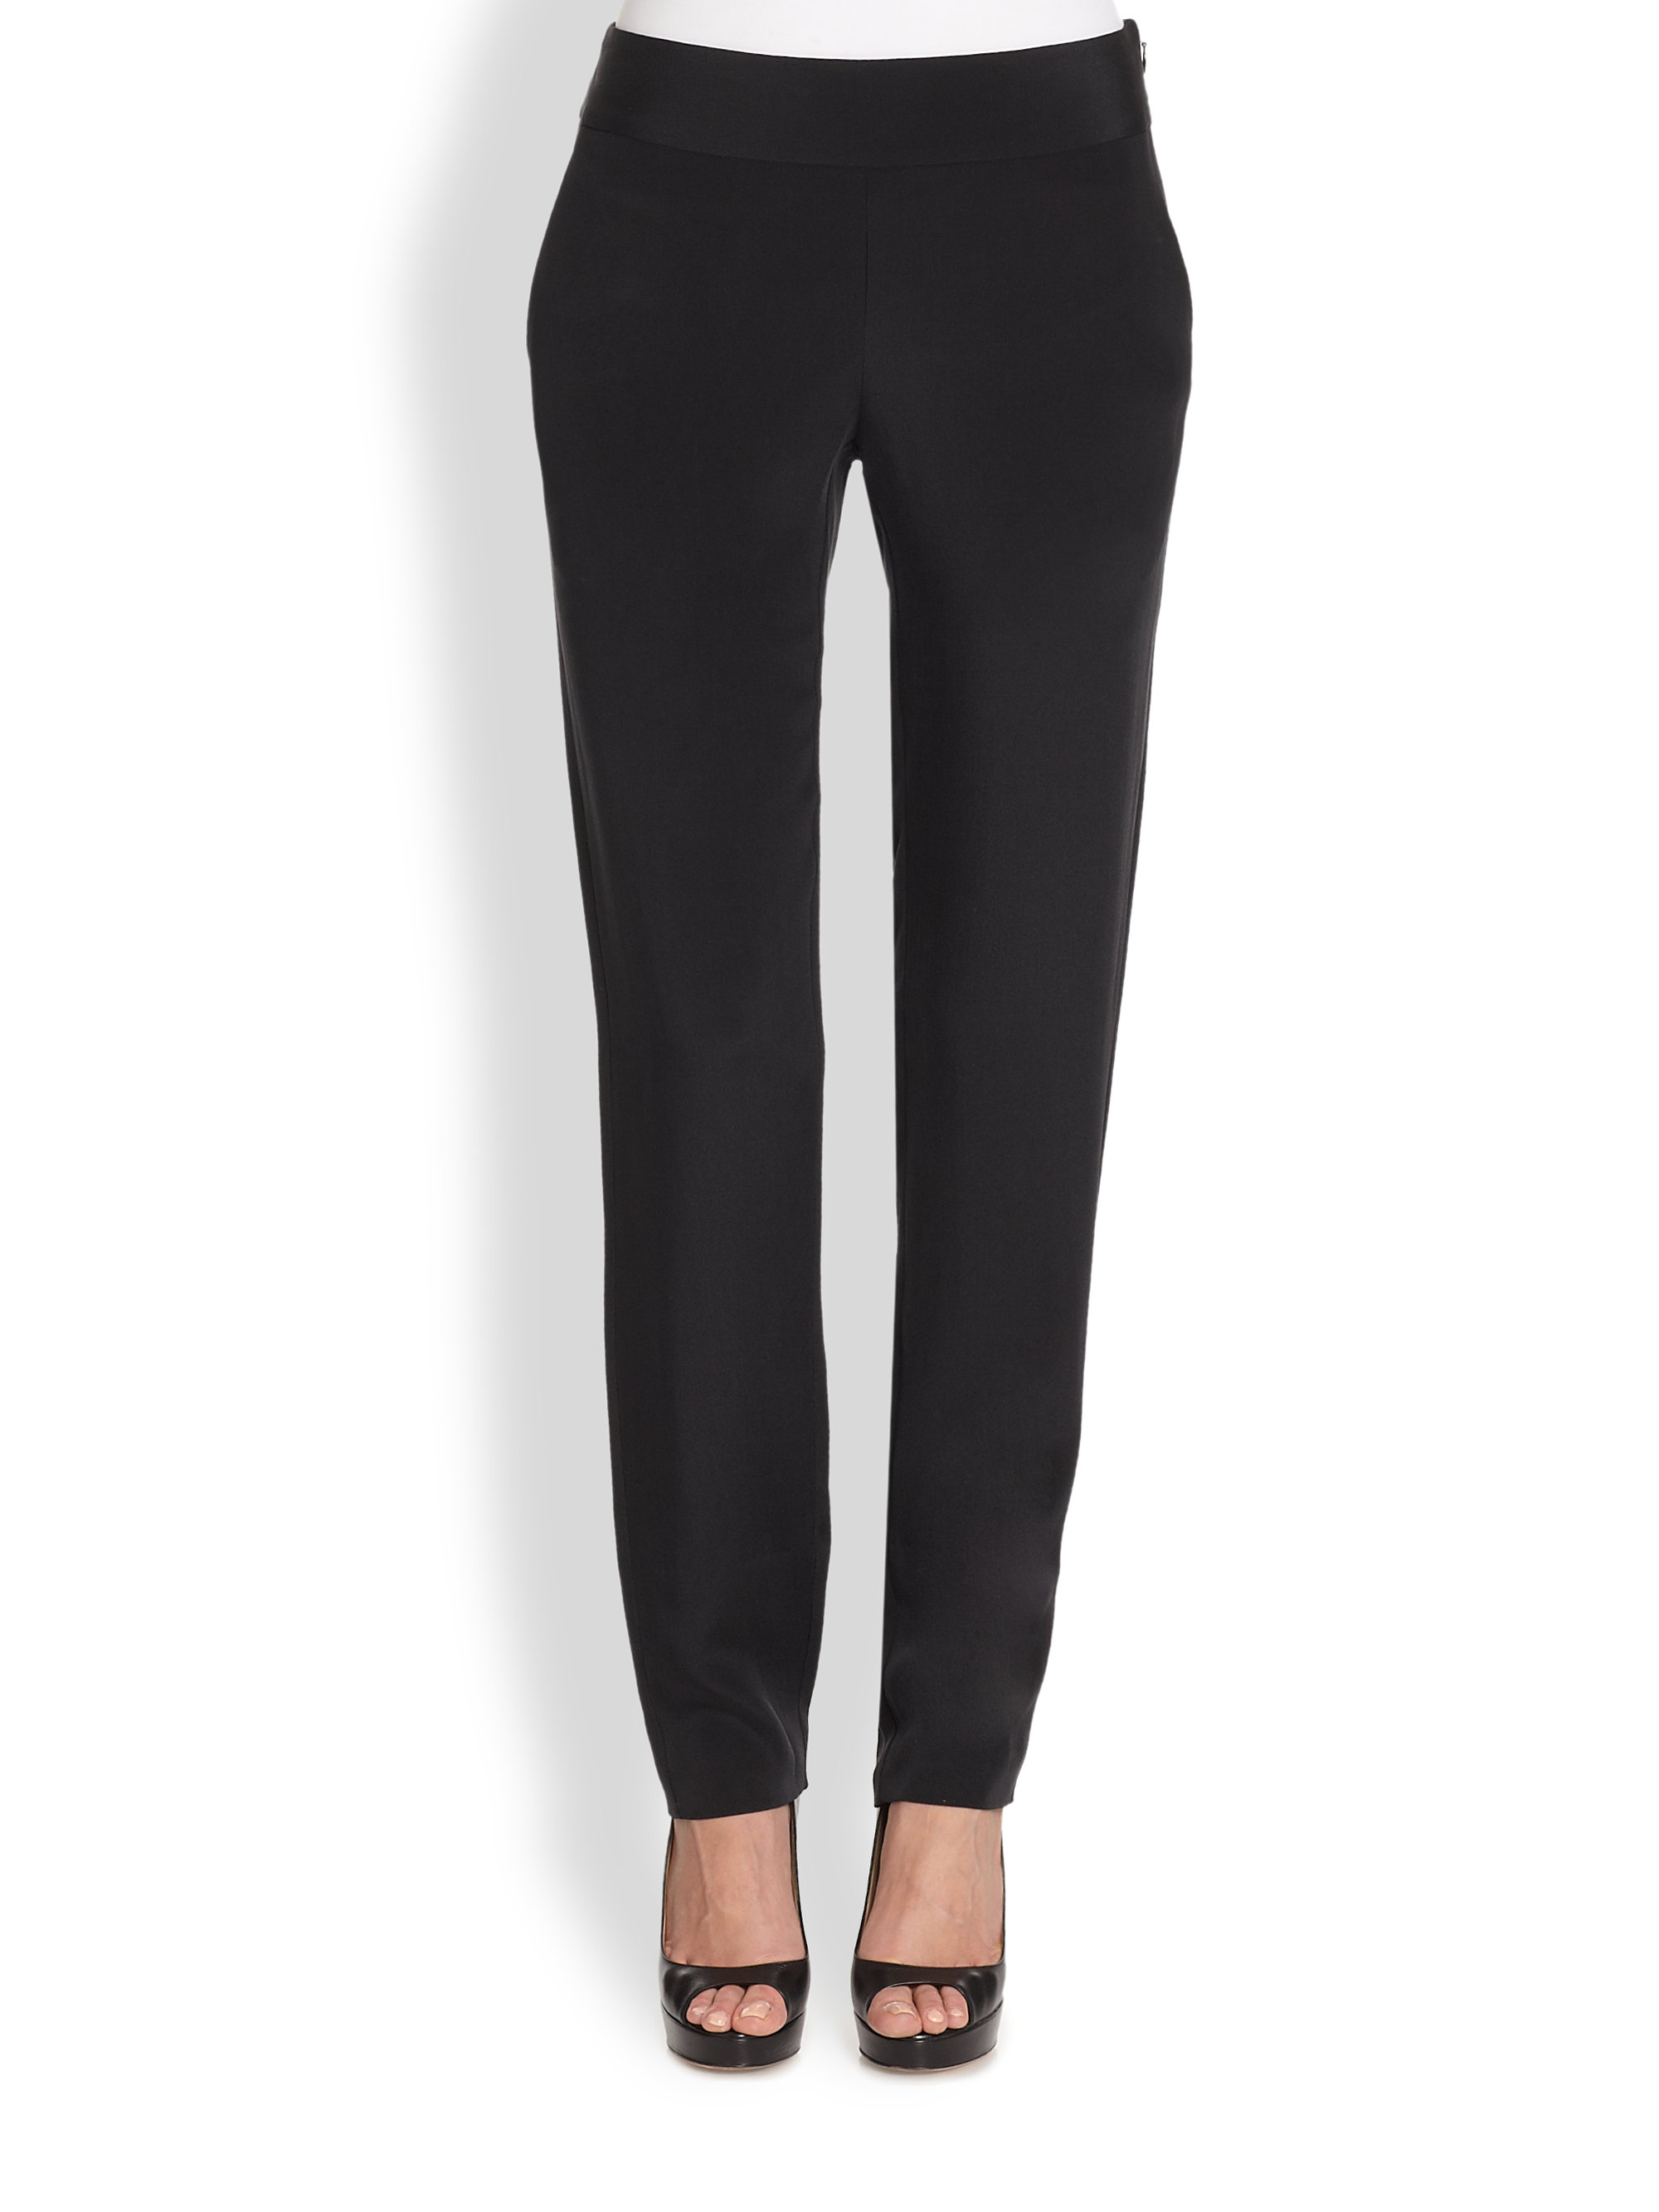 Lyst - Marchesa Voyage Silk Pants in Black